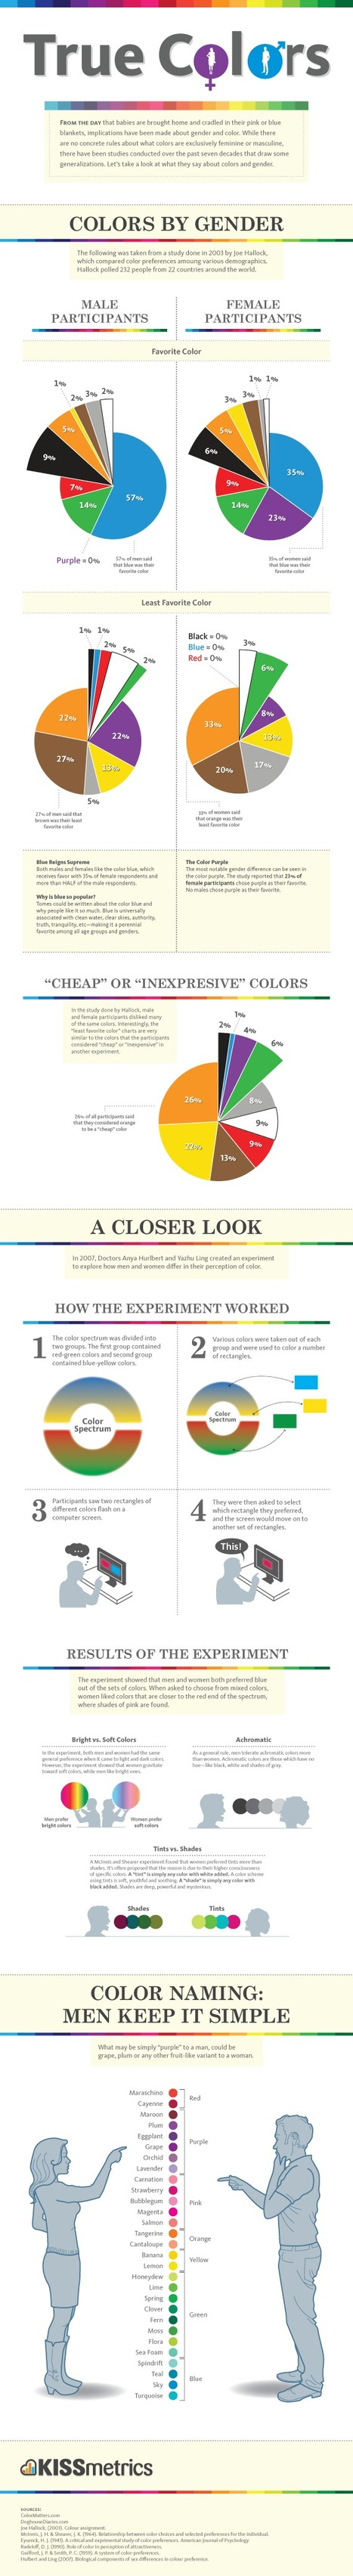 Color Is Master Of Us All: Color Preference By Gender [Infographic] | Social and digital network | Scoop.it